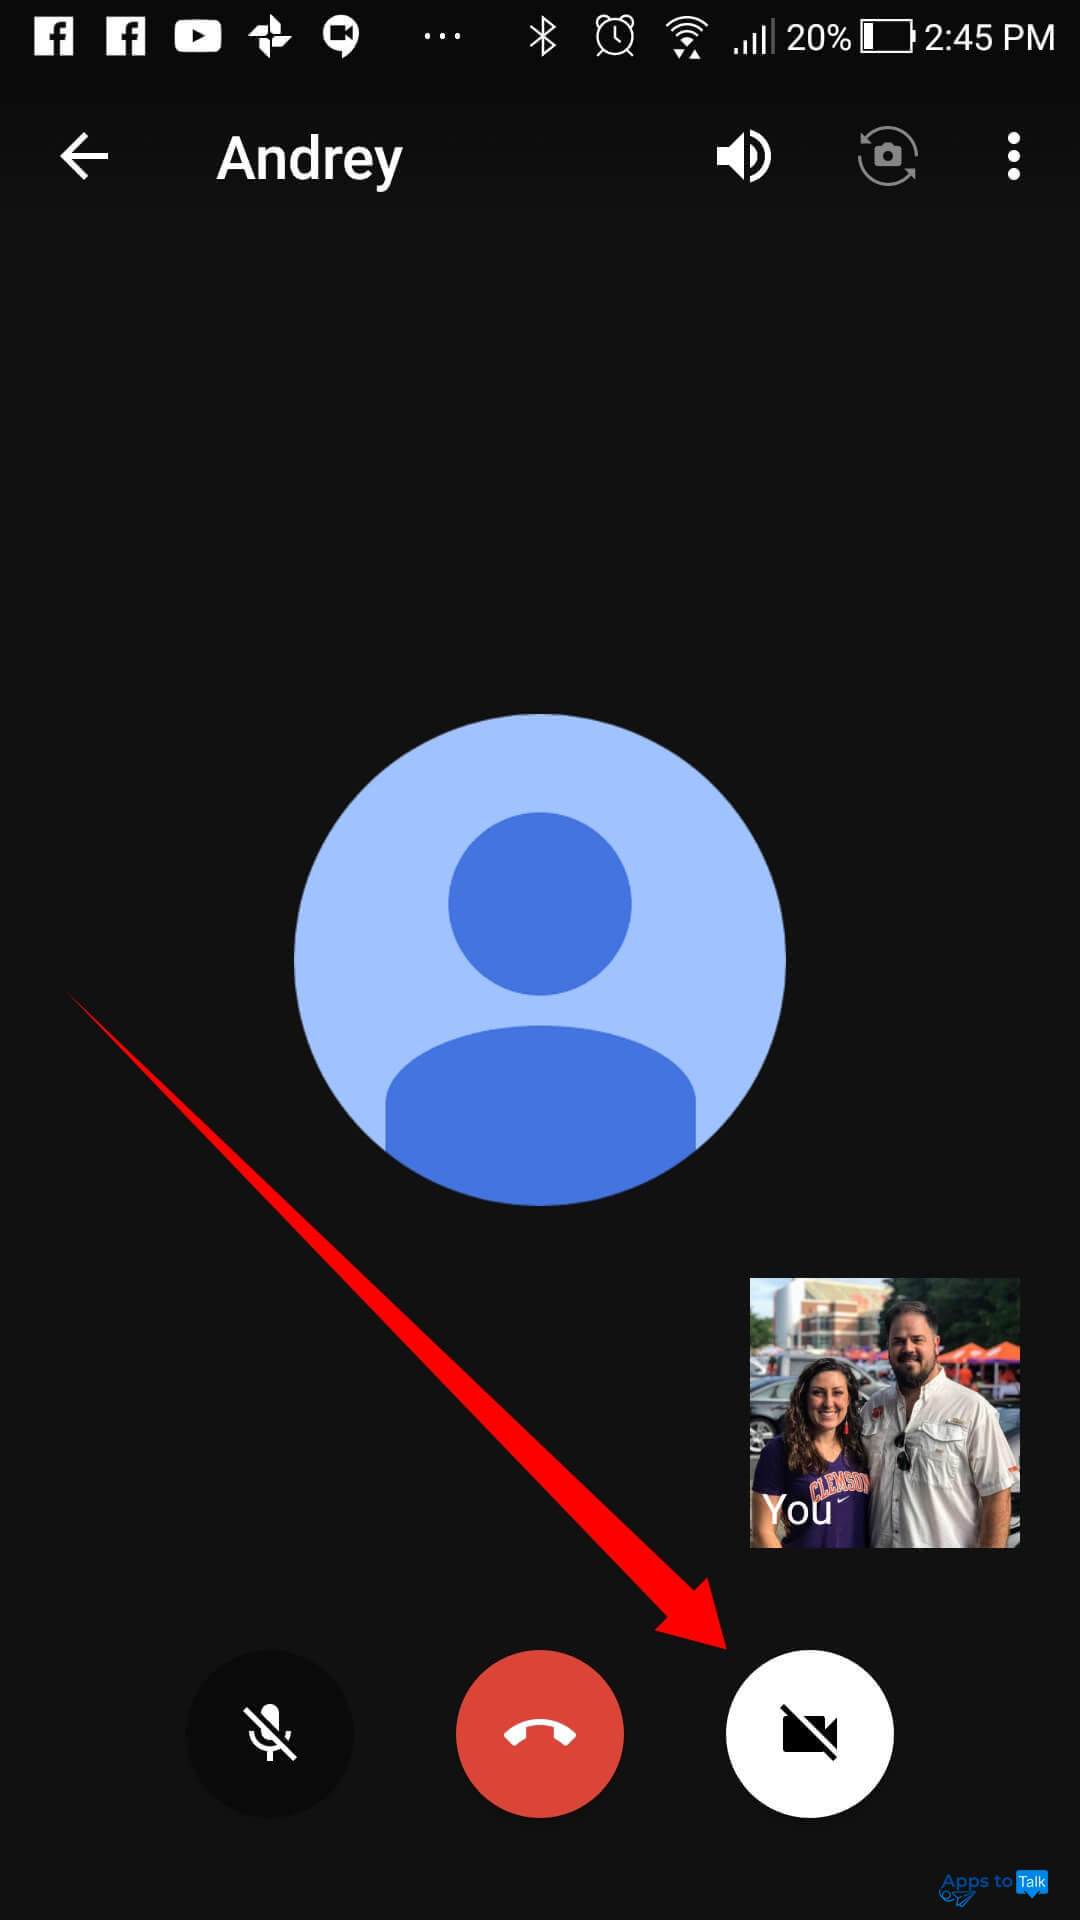 Problems with Hangouts calls - causes and solutions